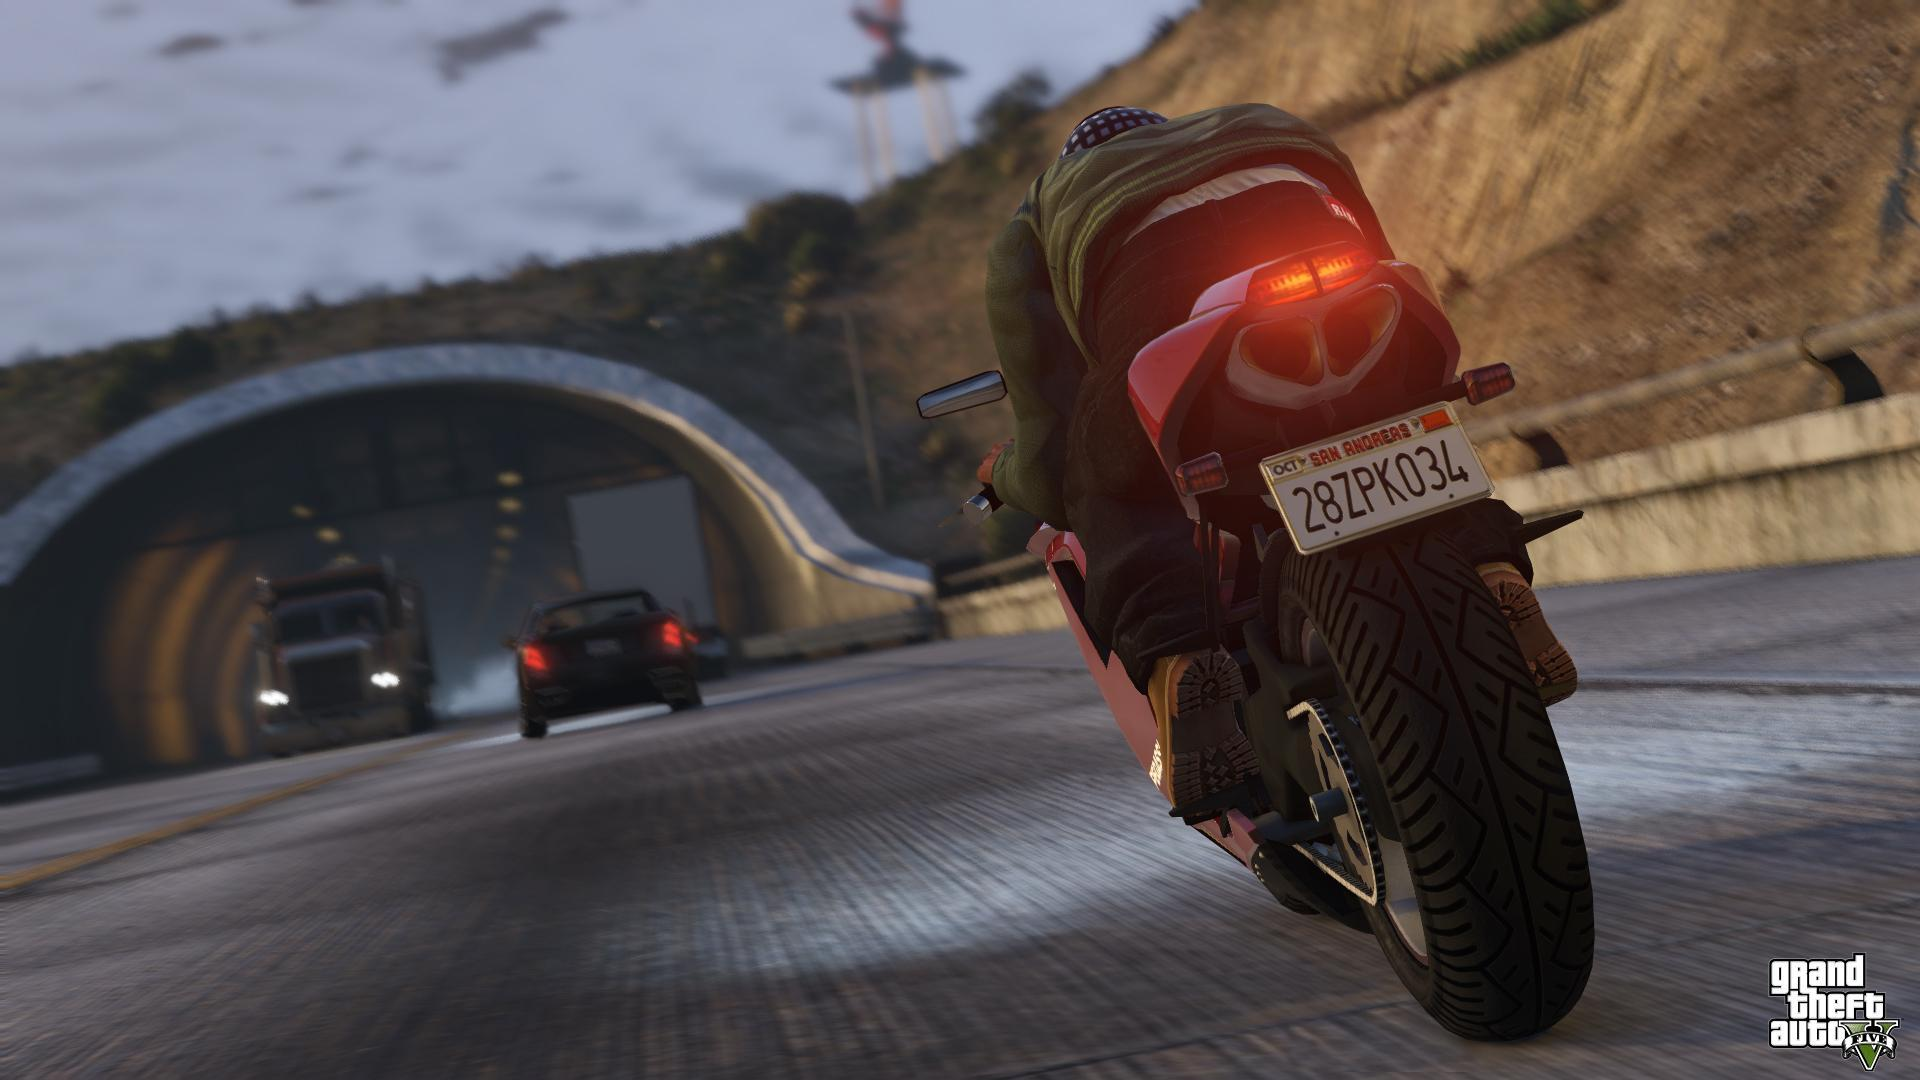 Bati 801 - GTA V Vehicles Database & Statistics - Grand Theft Auto V